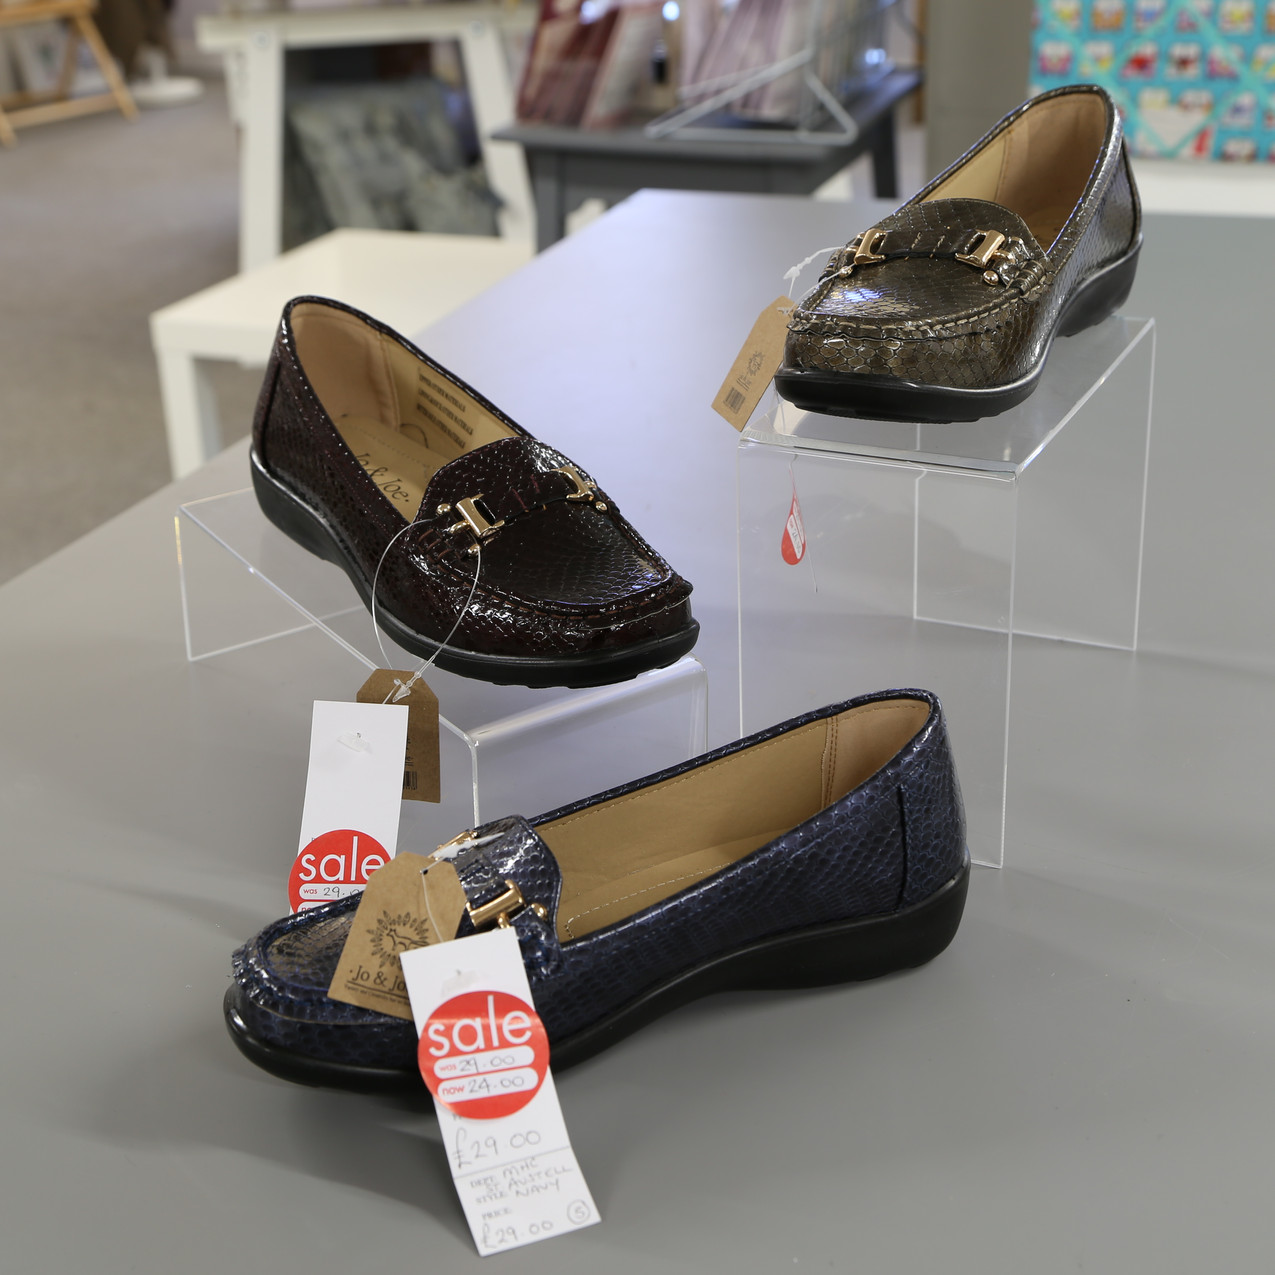 Loafers from £29 to £24